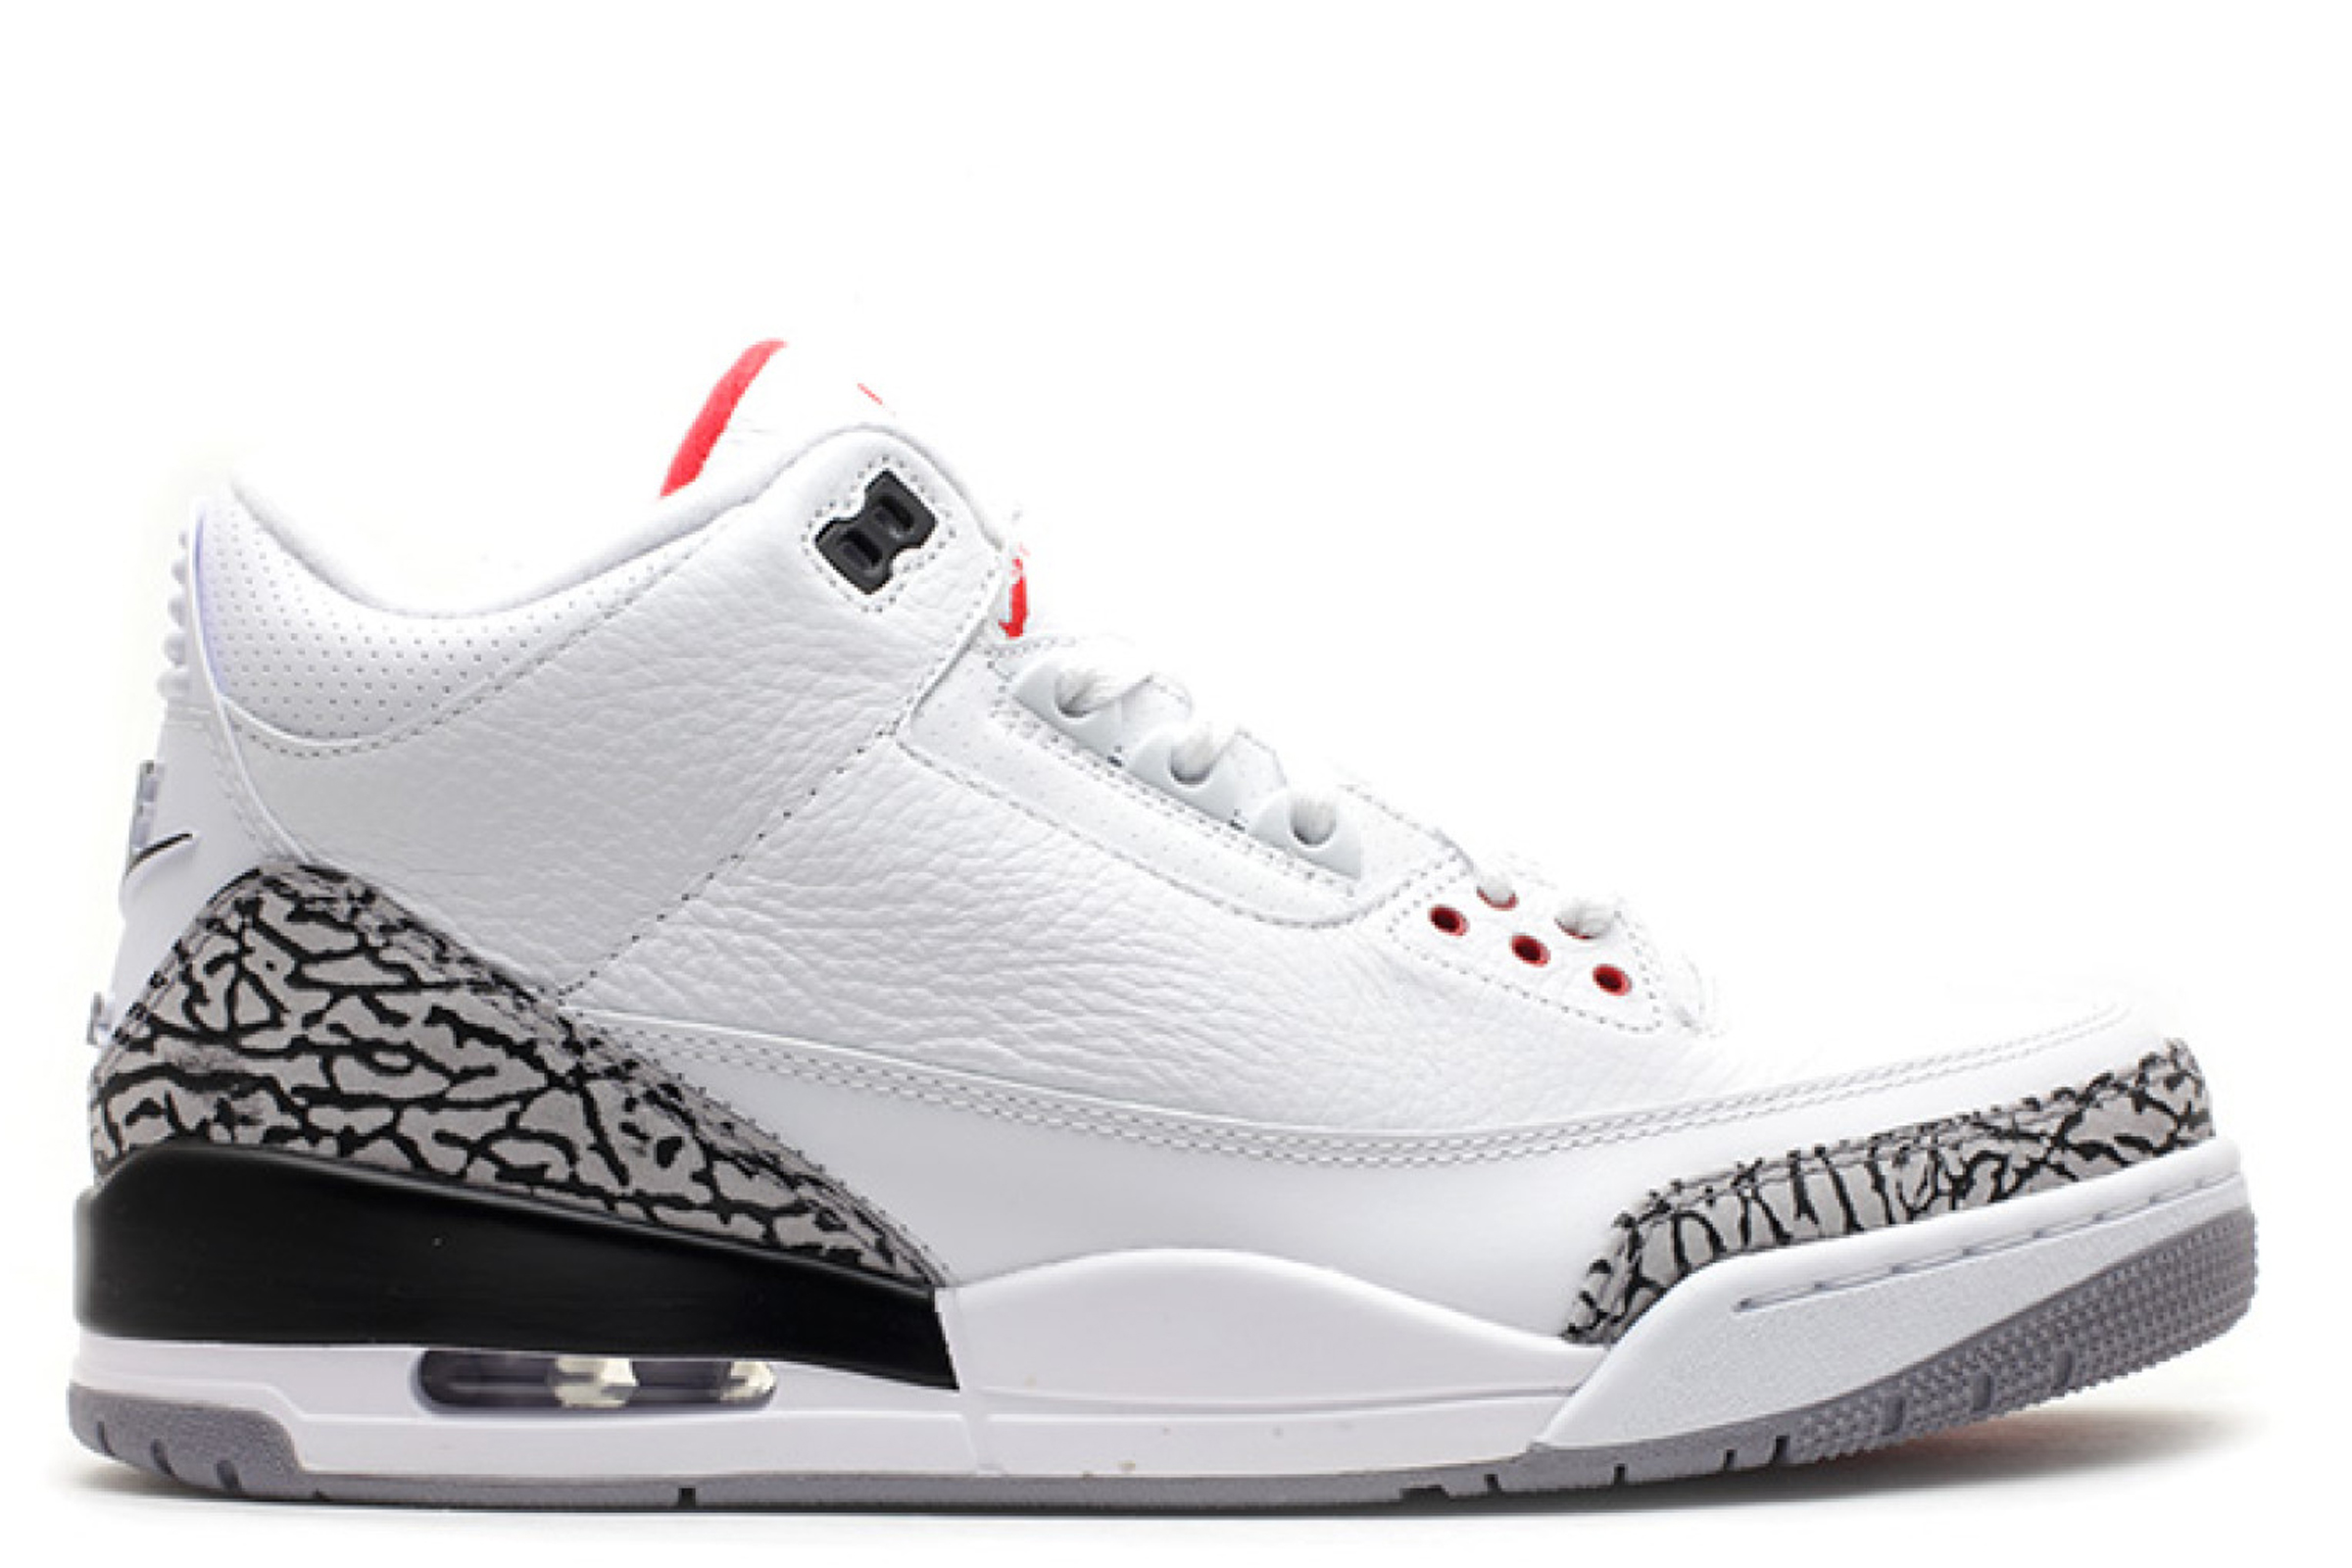 501c9b26631a86 A True (Blue) Collaboration  History of the Jordan III - Air Jordan 3  History